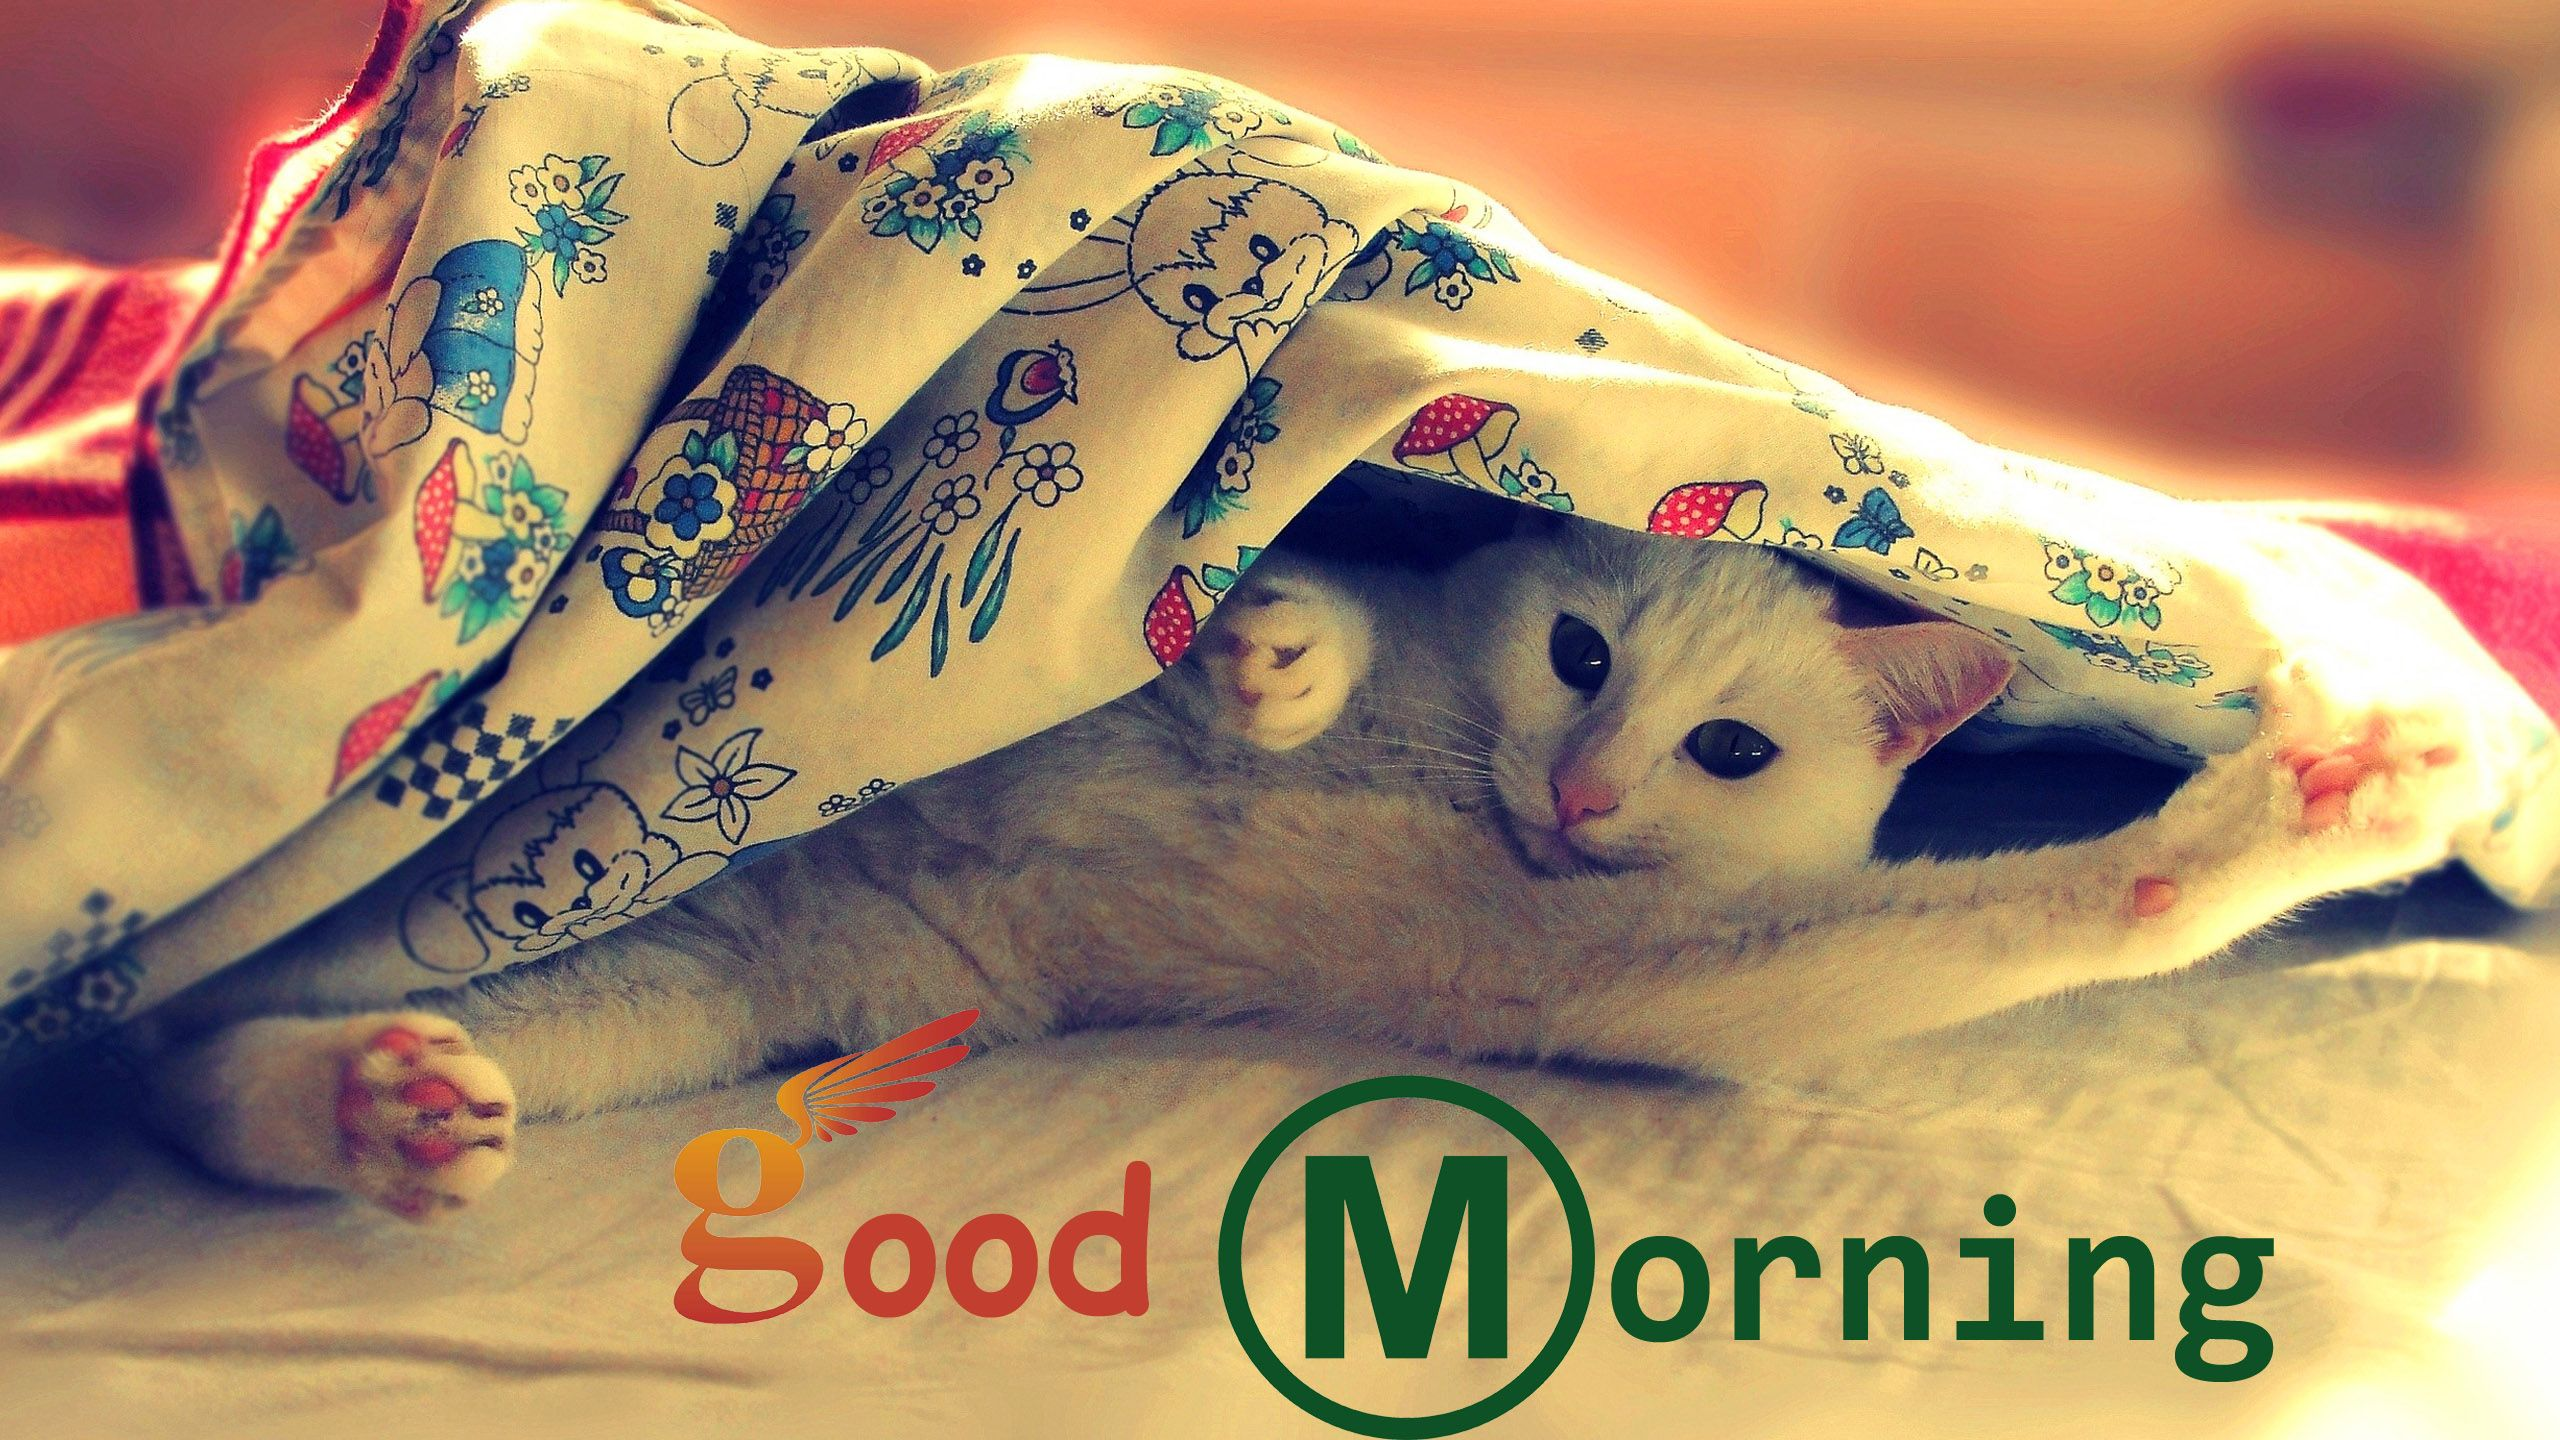 good morning sweet hd pics 1080p | good morning | pinterest